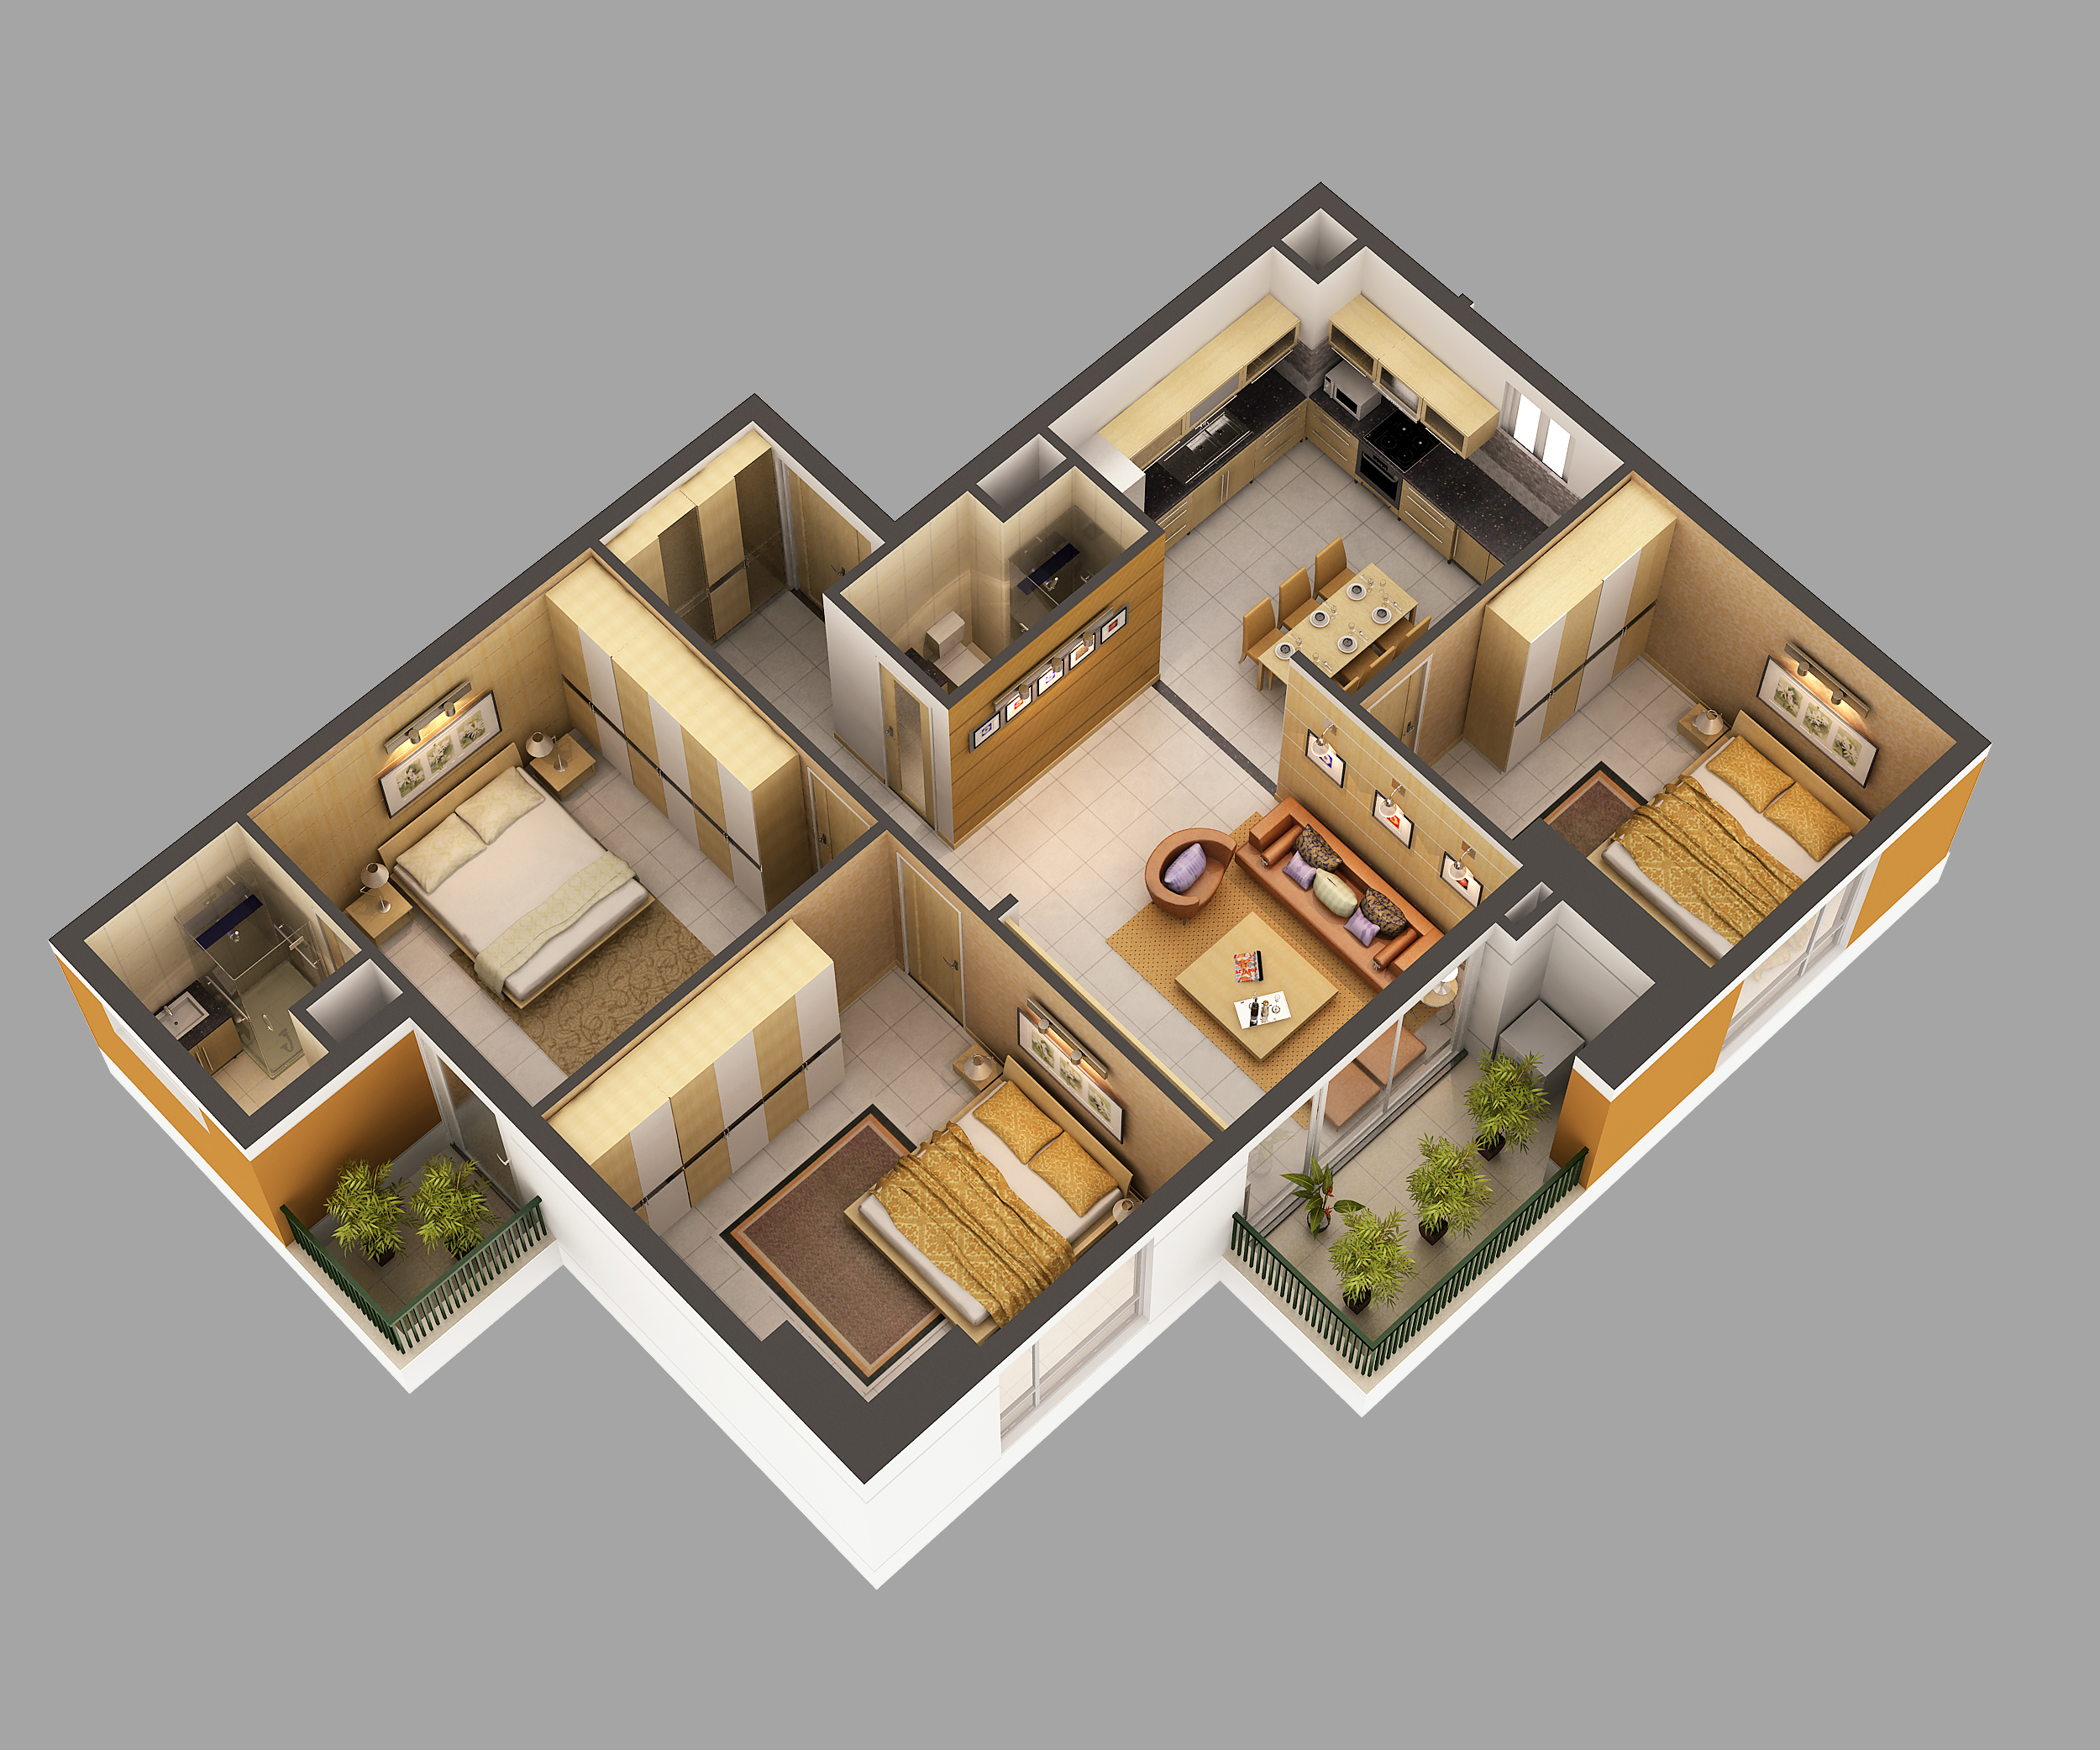 Model Homes Images Interior 3d Model Home Interior Fully Furnished 3d Model Max